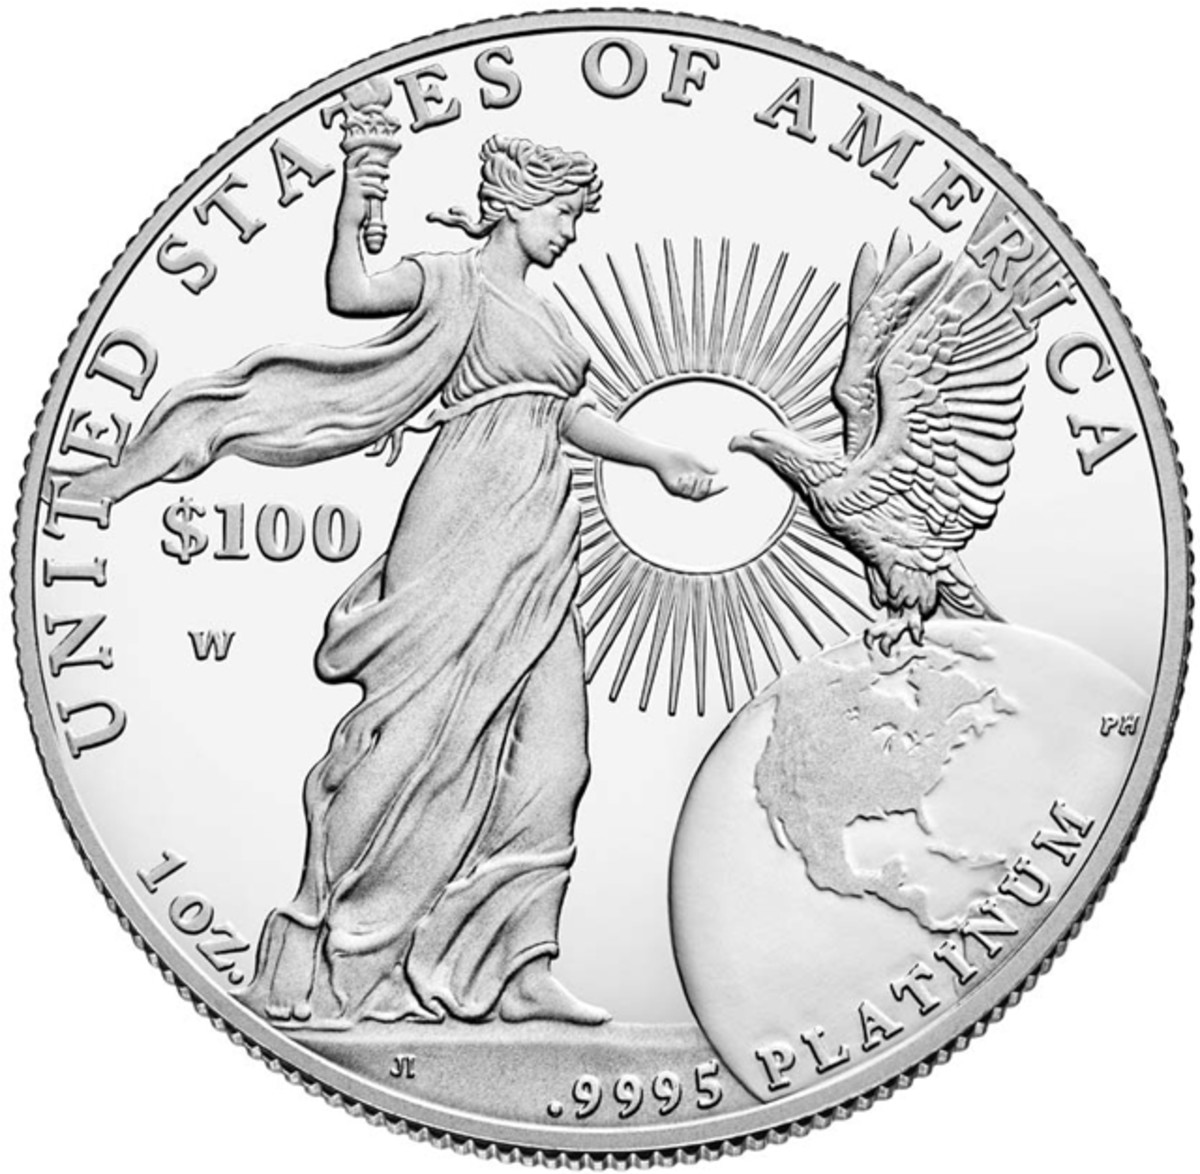 The lower mintage 2015-W platinum proof Eagle commands high prices on the secondary market.